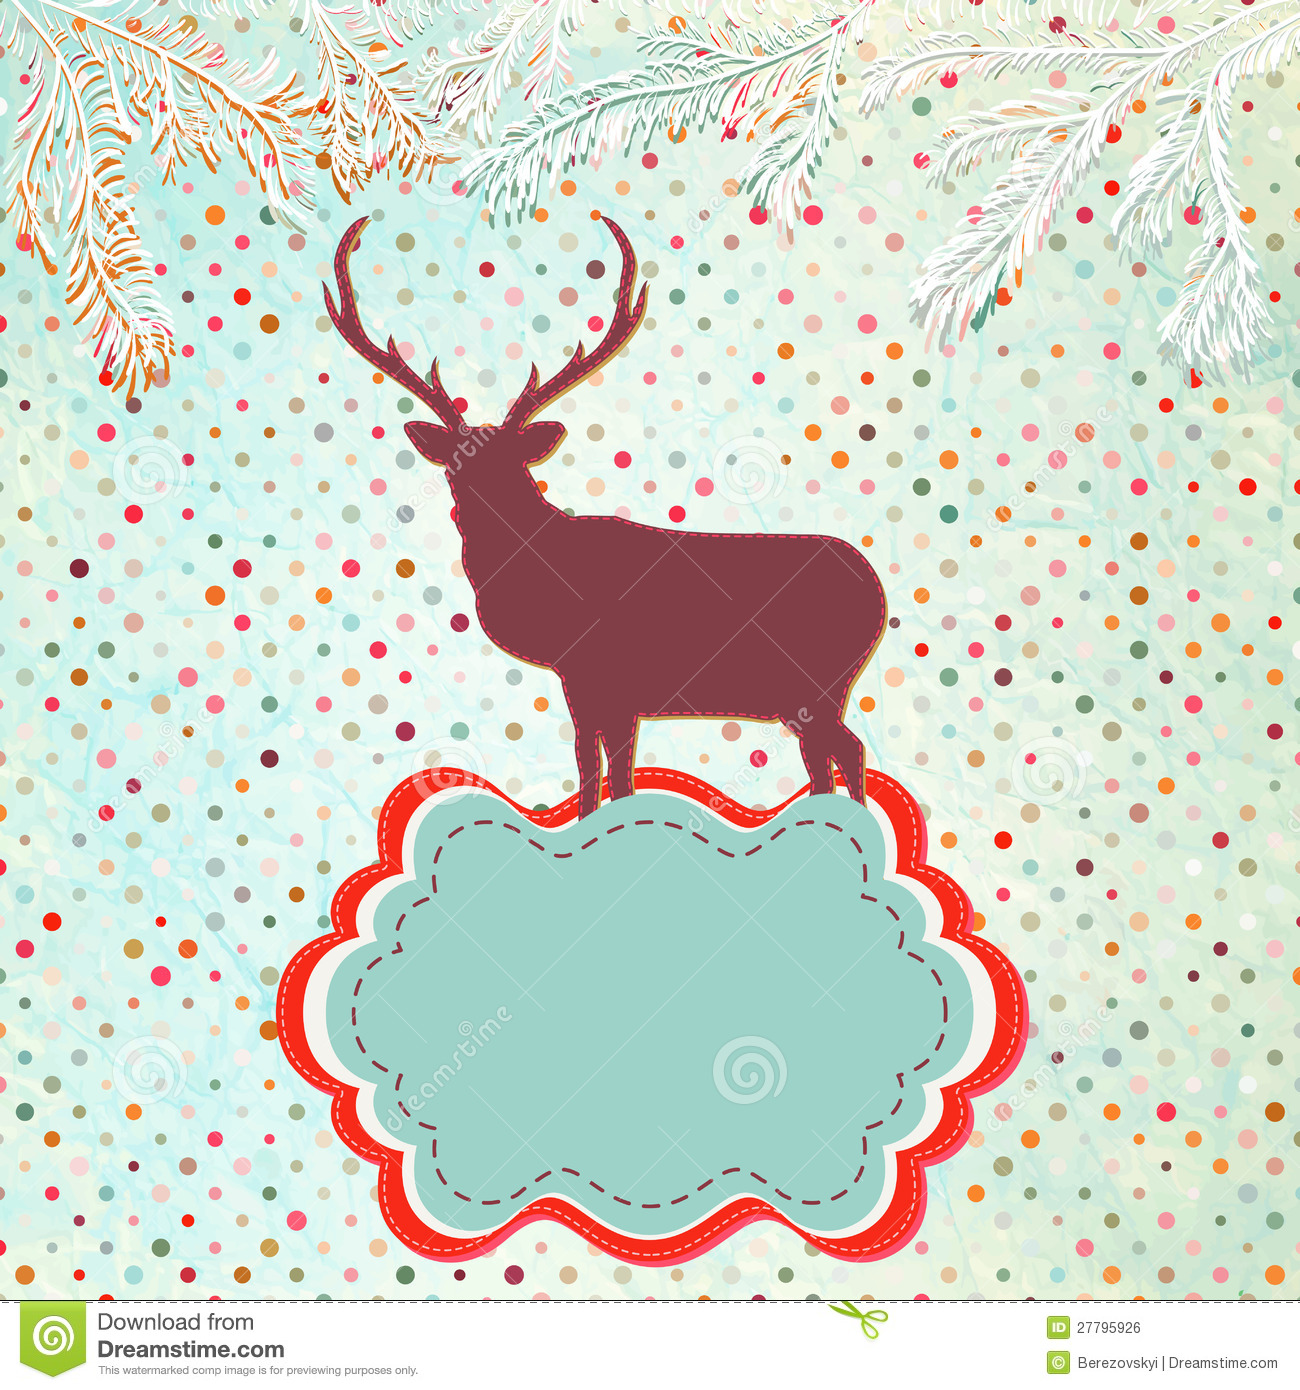 Christmas Invitations Free Template.Christmas Invitation Card Template Eps 8 Stock Vector